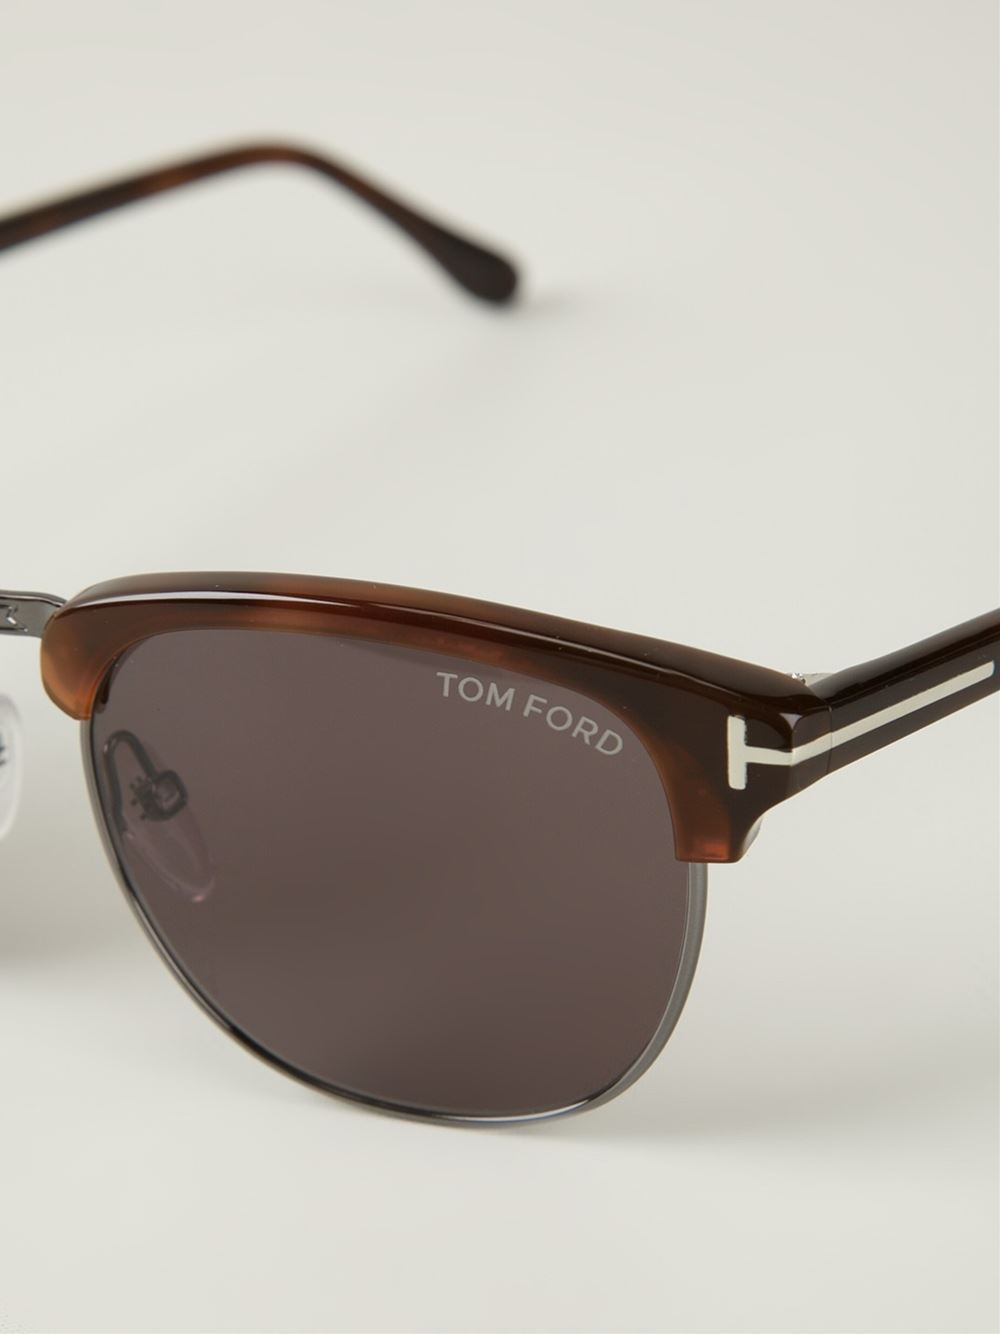 ba809dd5a27c Tom Ford Mens Sunglasses Henry - Bitterroot Public Library